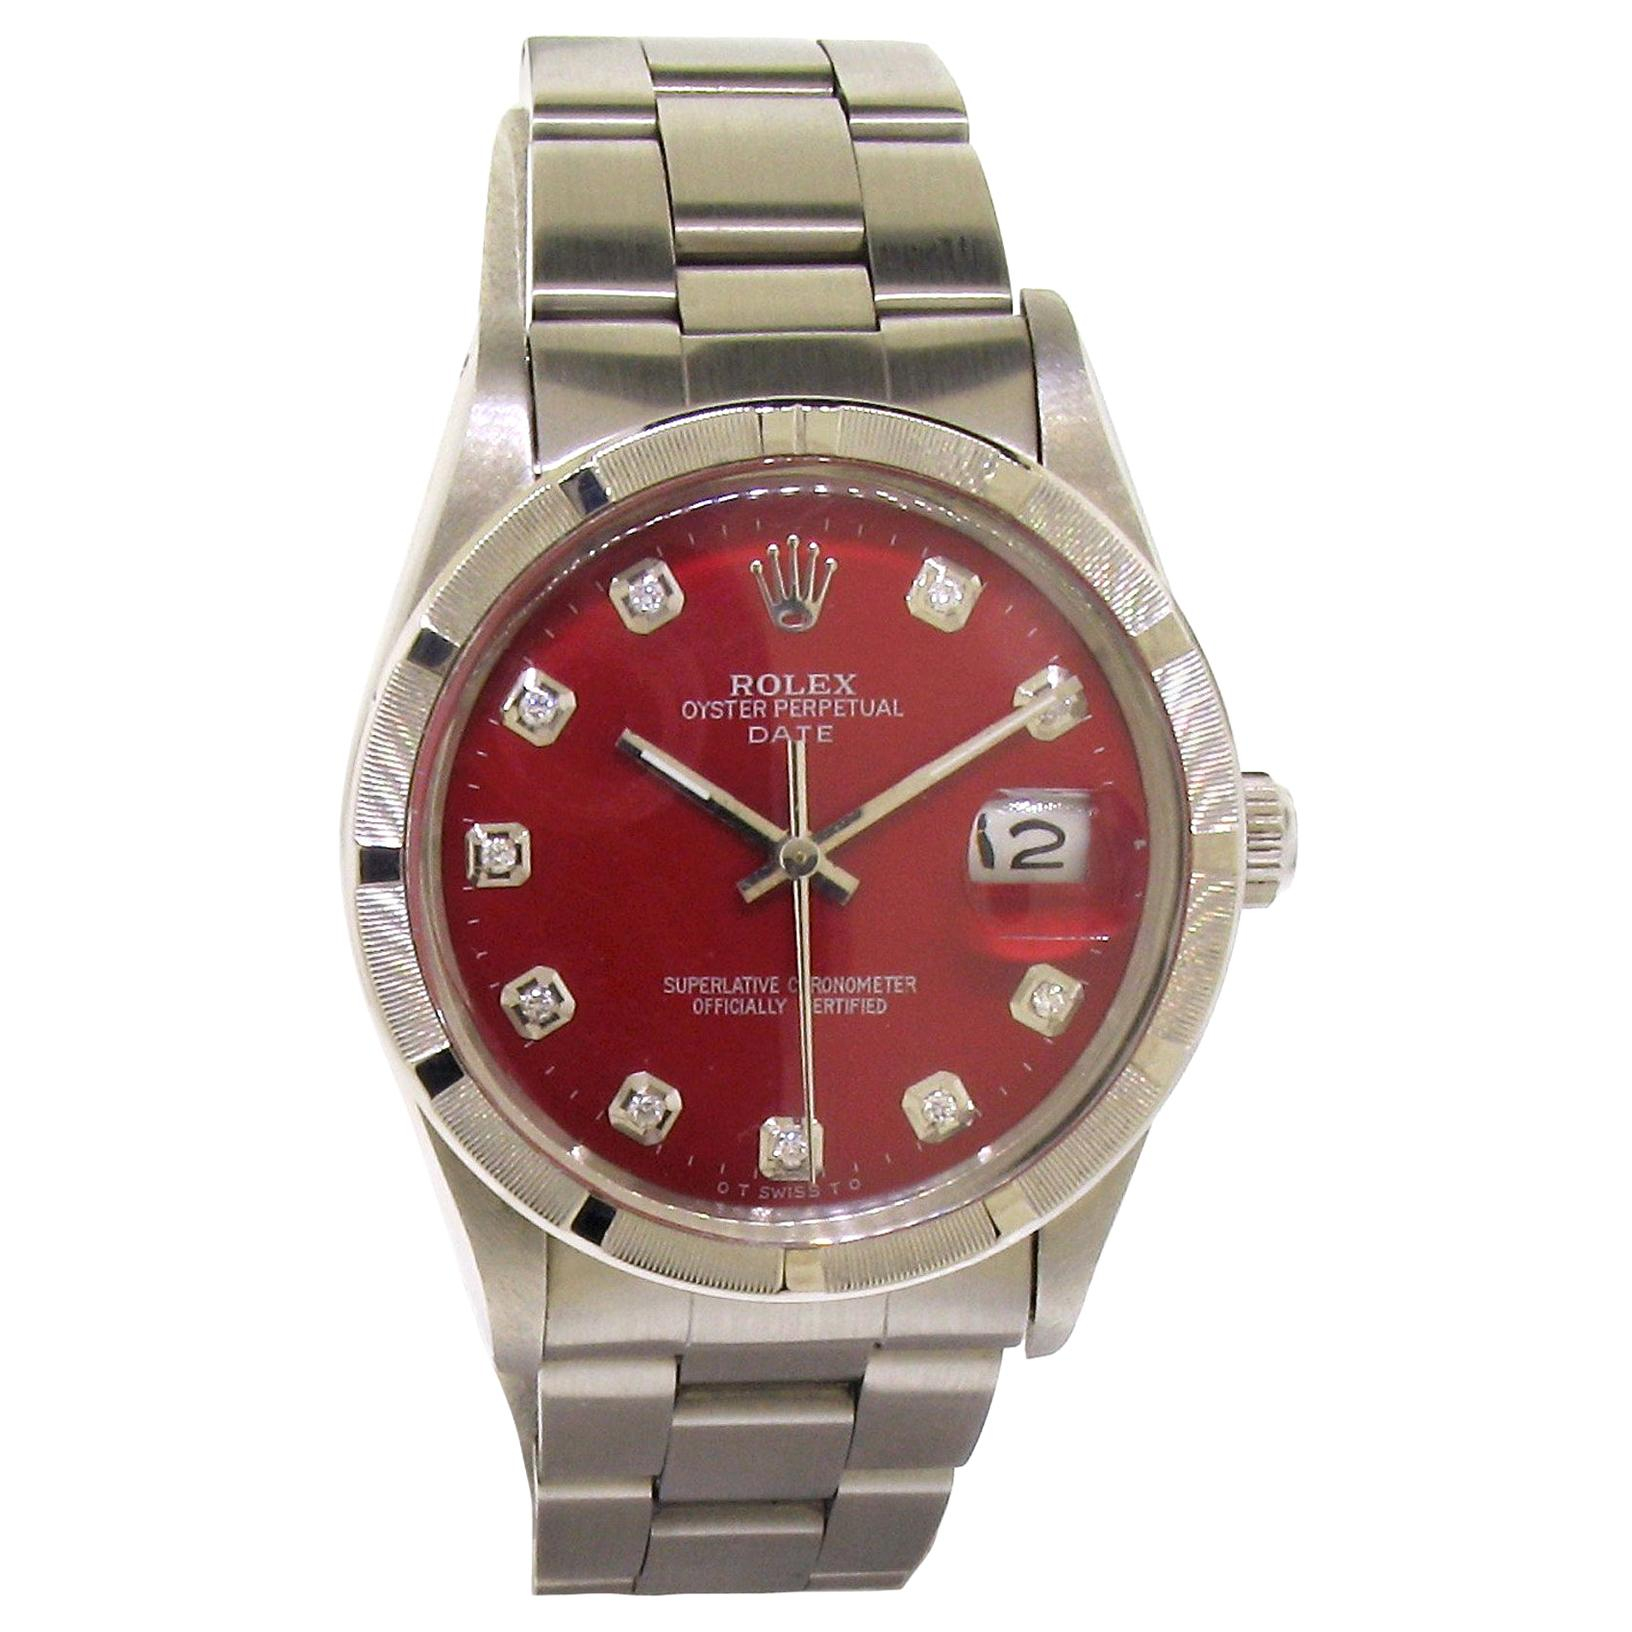 Rolex Steel Oyster Perpetual Date Ref. 5500 Red Diamond Dial, Early 1980's